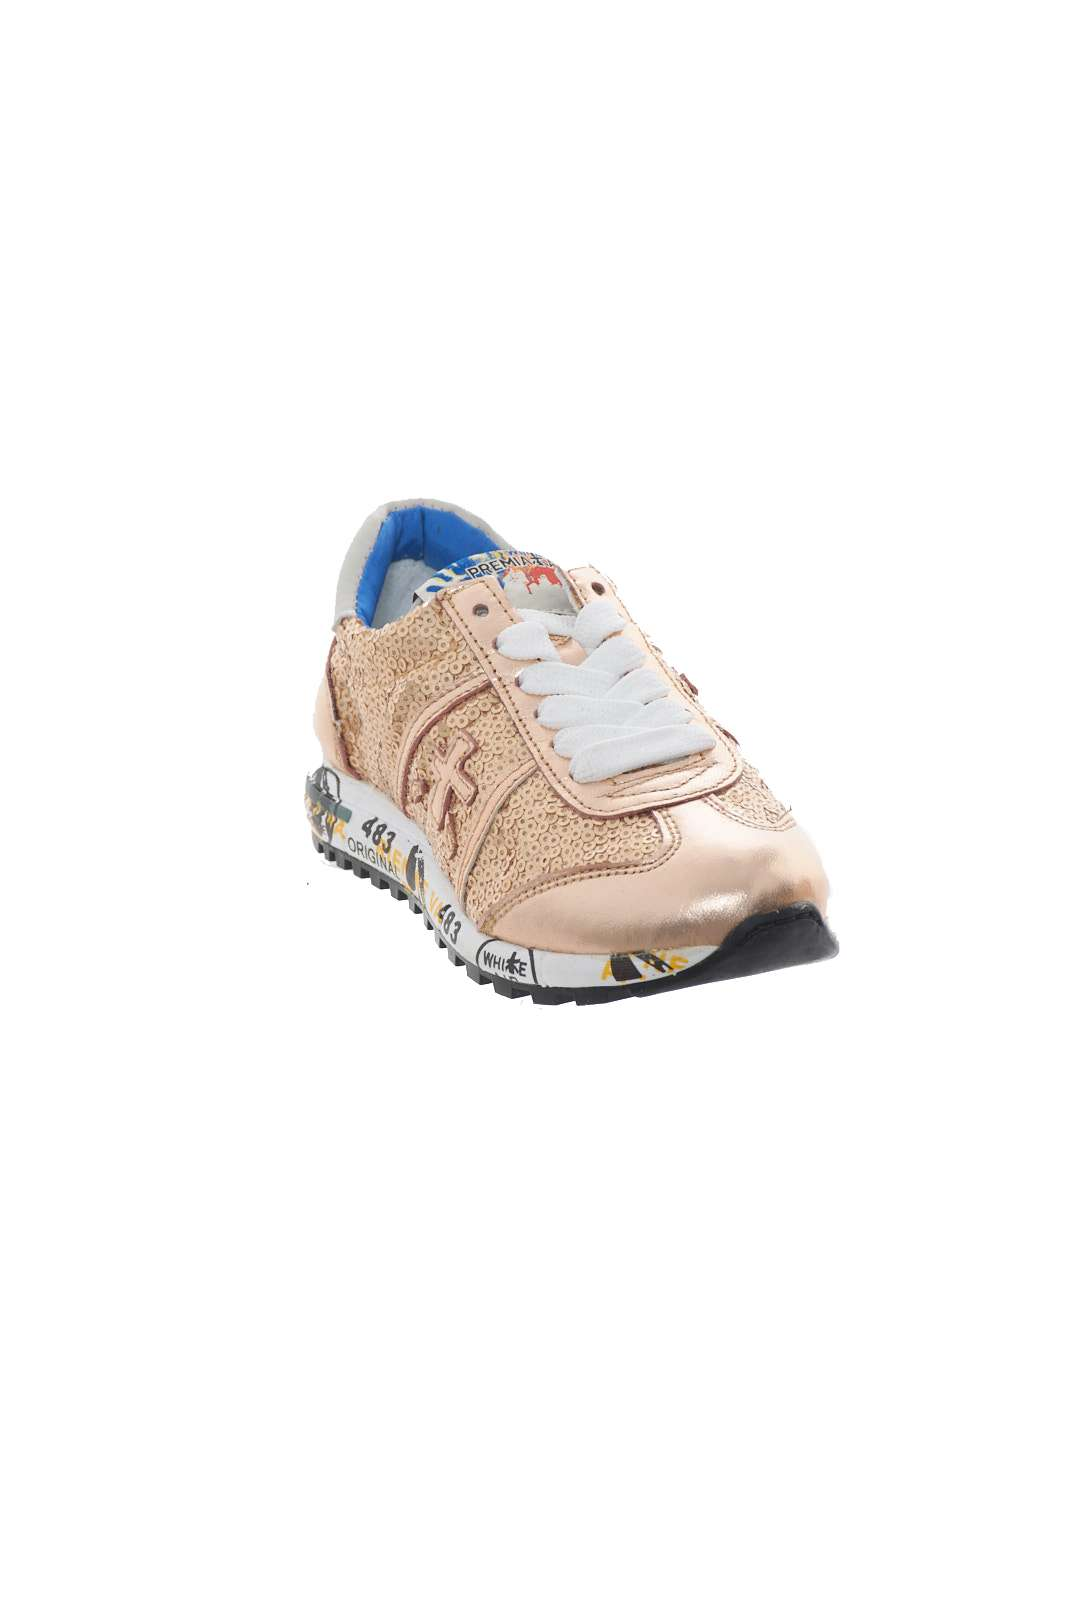 https://www.parmax.com/media/catalog/product/A/I/AI-outlet_parmax-sneaker-bambina-Will-be-Premiata-lucy-C_1.jpg